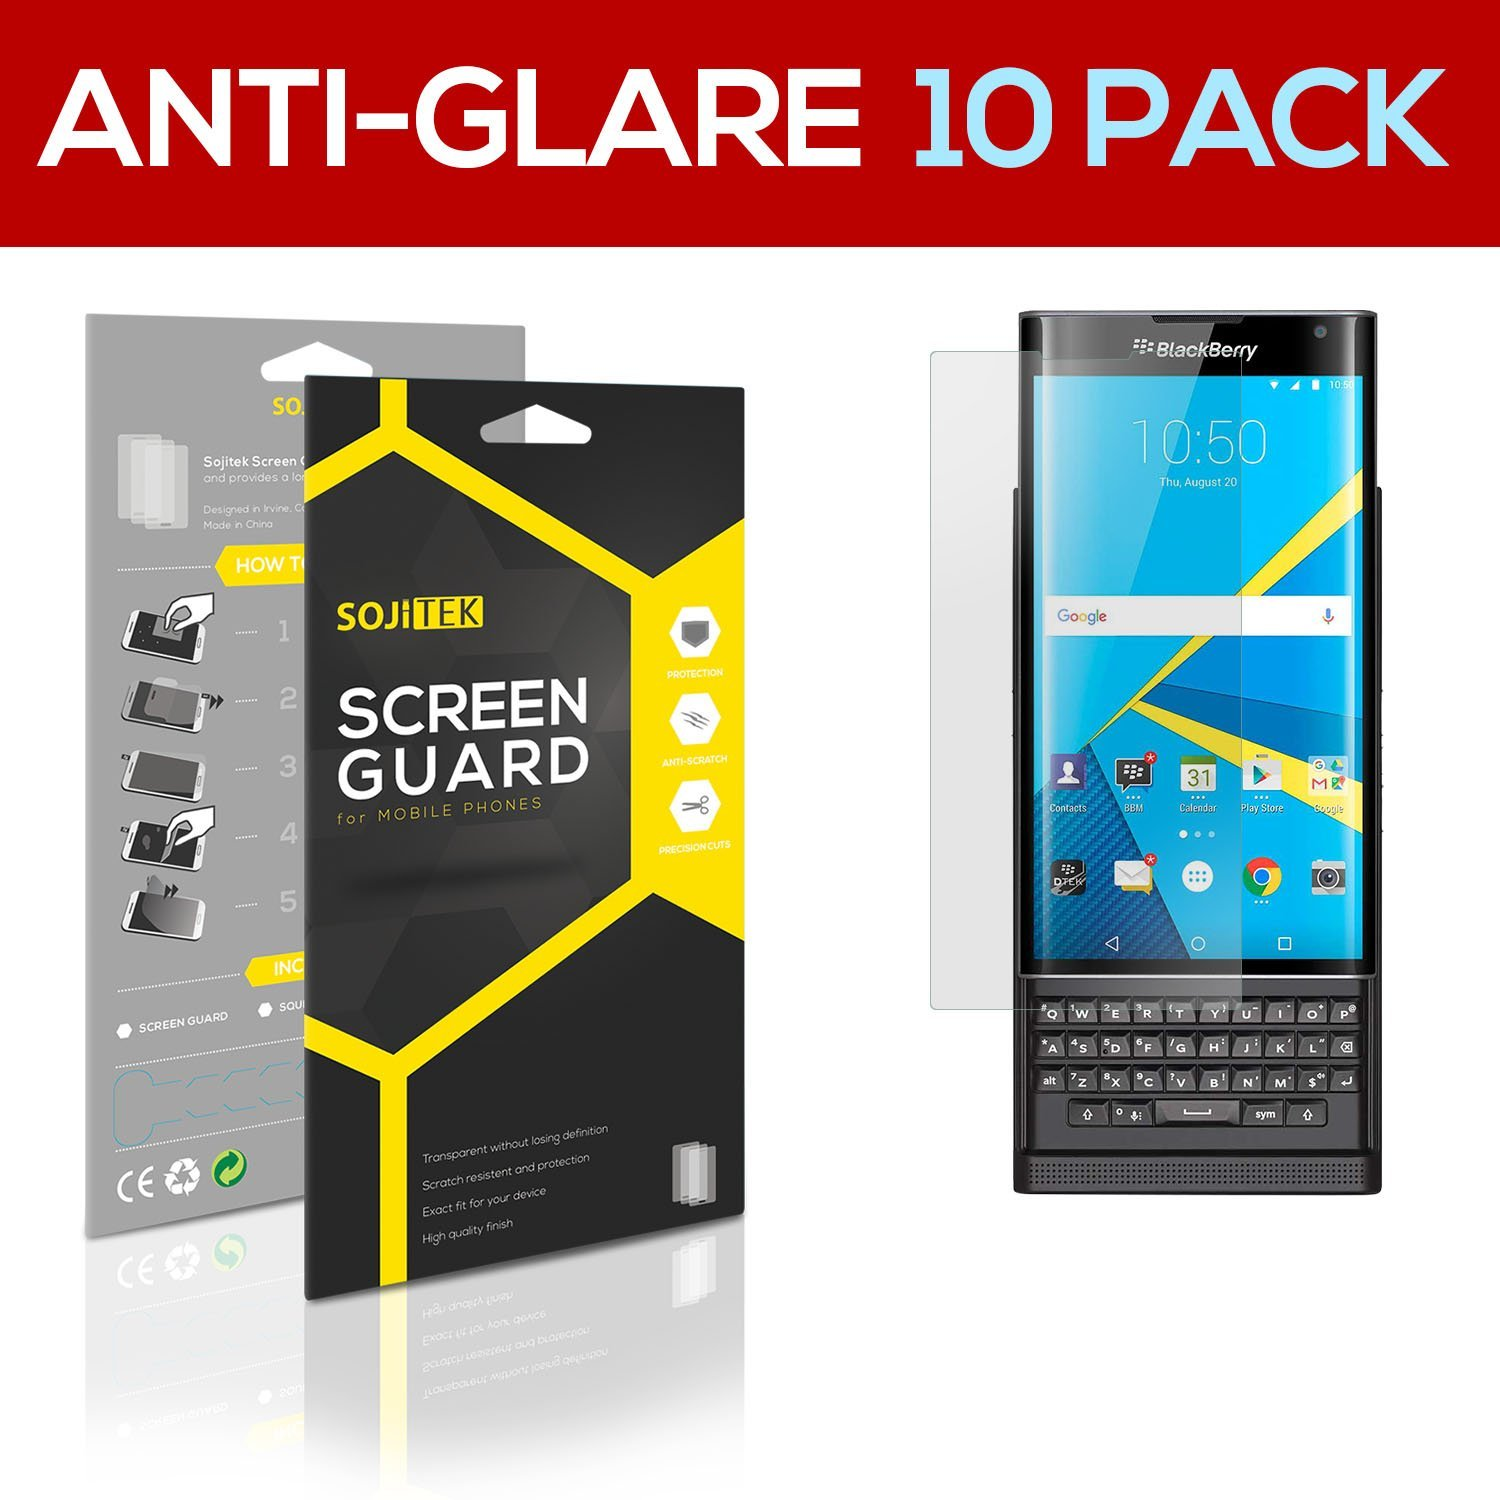 SOJITEK BlackBerry Android Priv Premium Anti-Glare Anti-fingerprint Matte Screen Protector [10 Pack] Lifetime Replacements Warranty + Retail Packaging